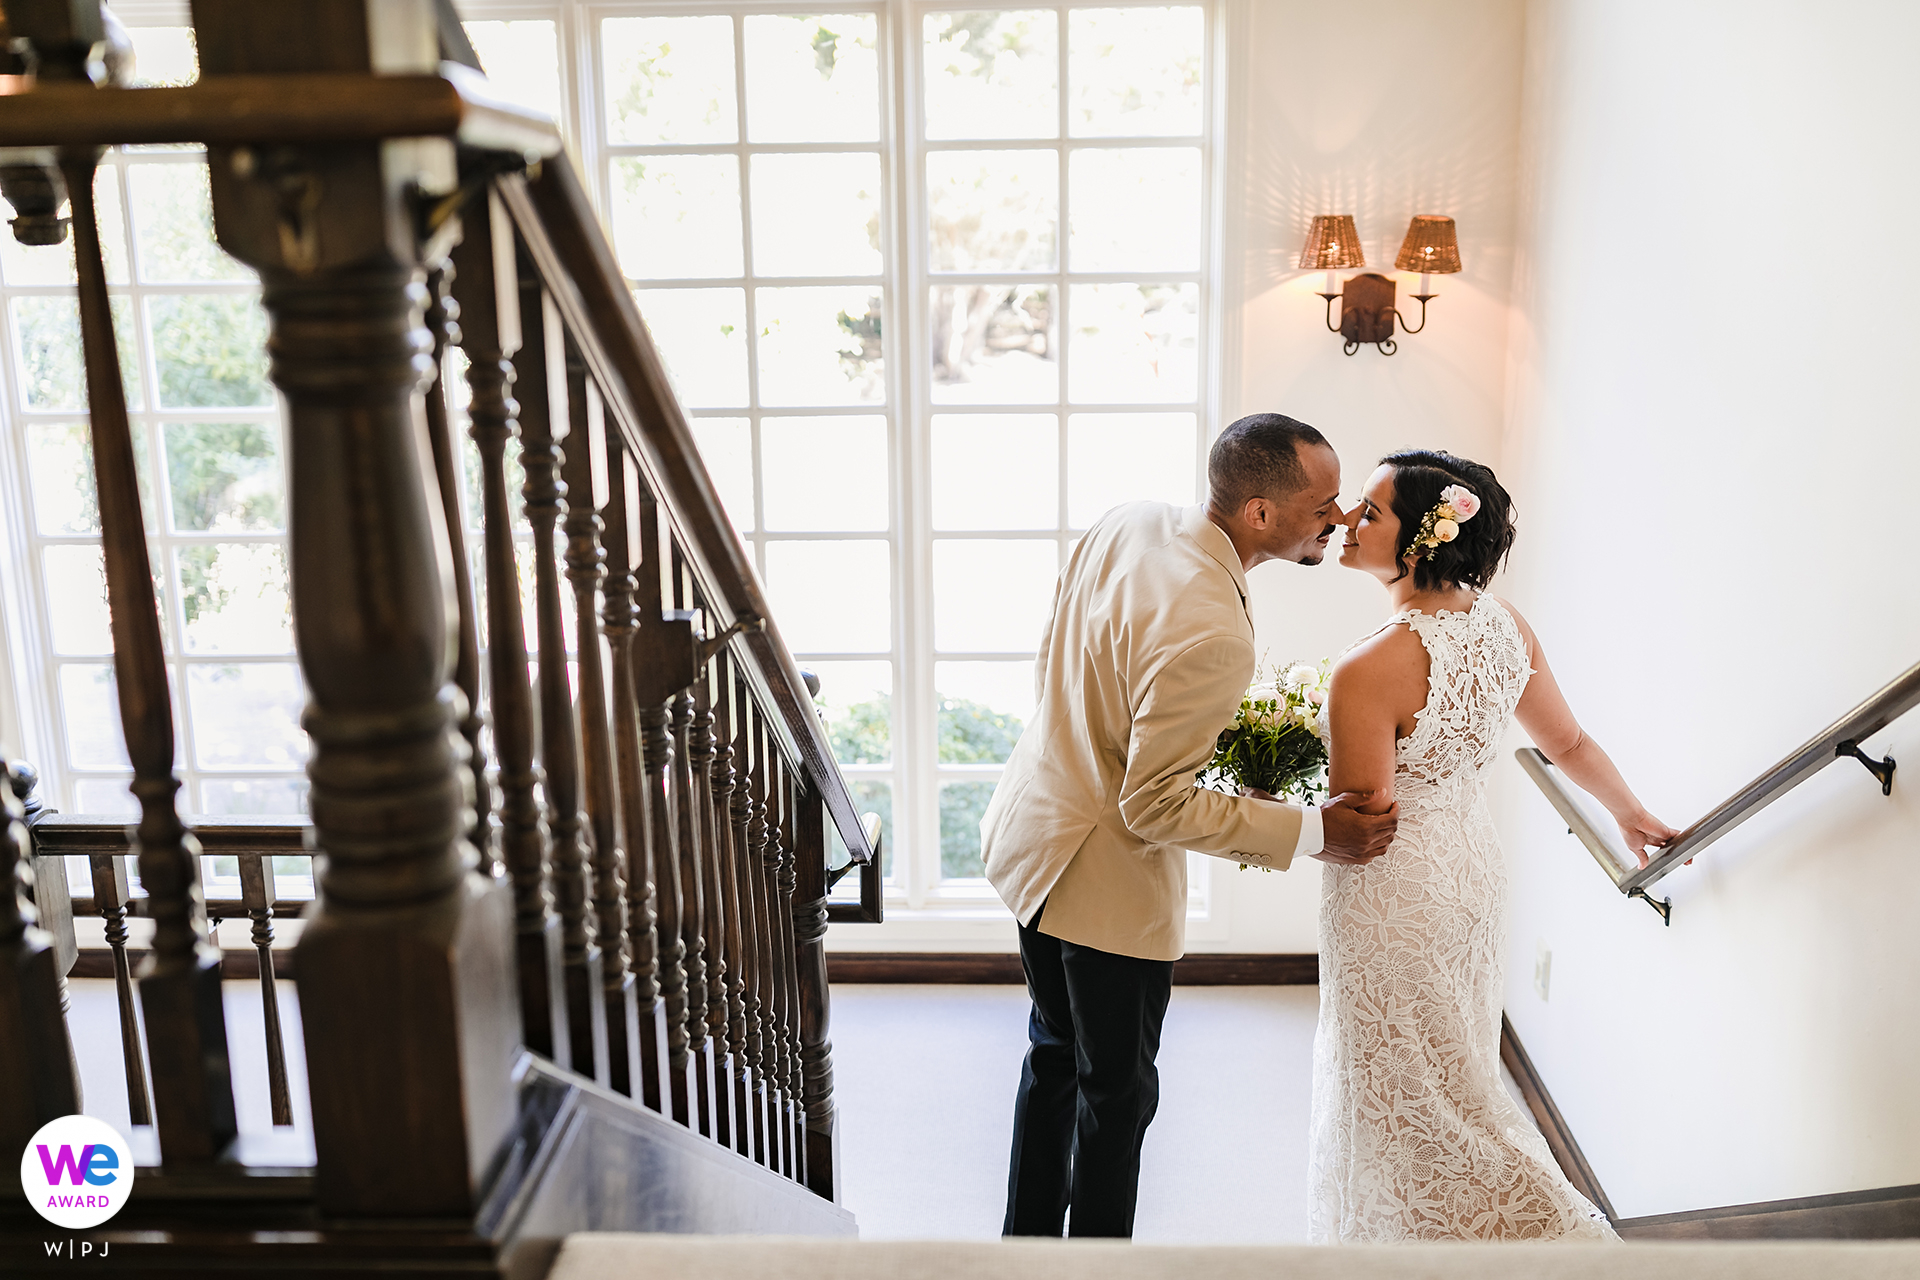 Wedding Photography from Seal Cove Inn | The groom steals a quick yet passionate kiss from his soon-to-be bride